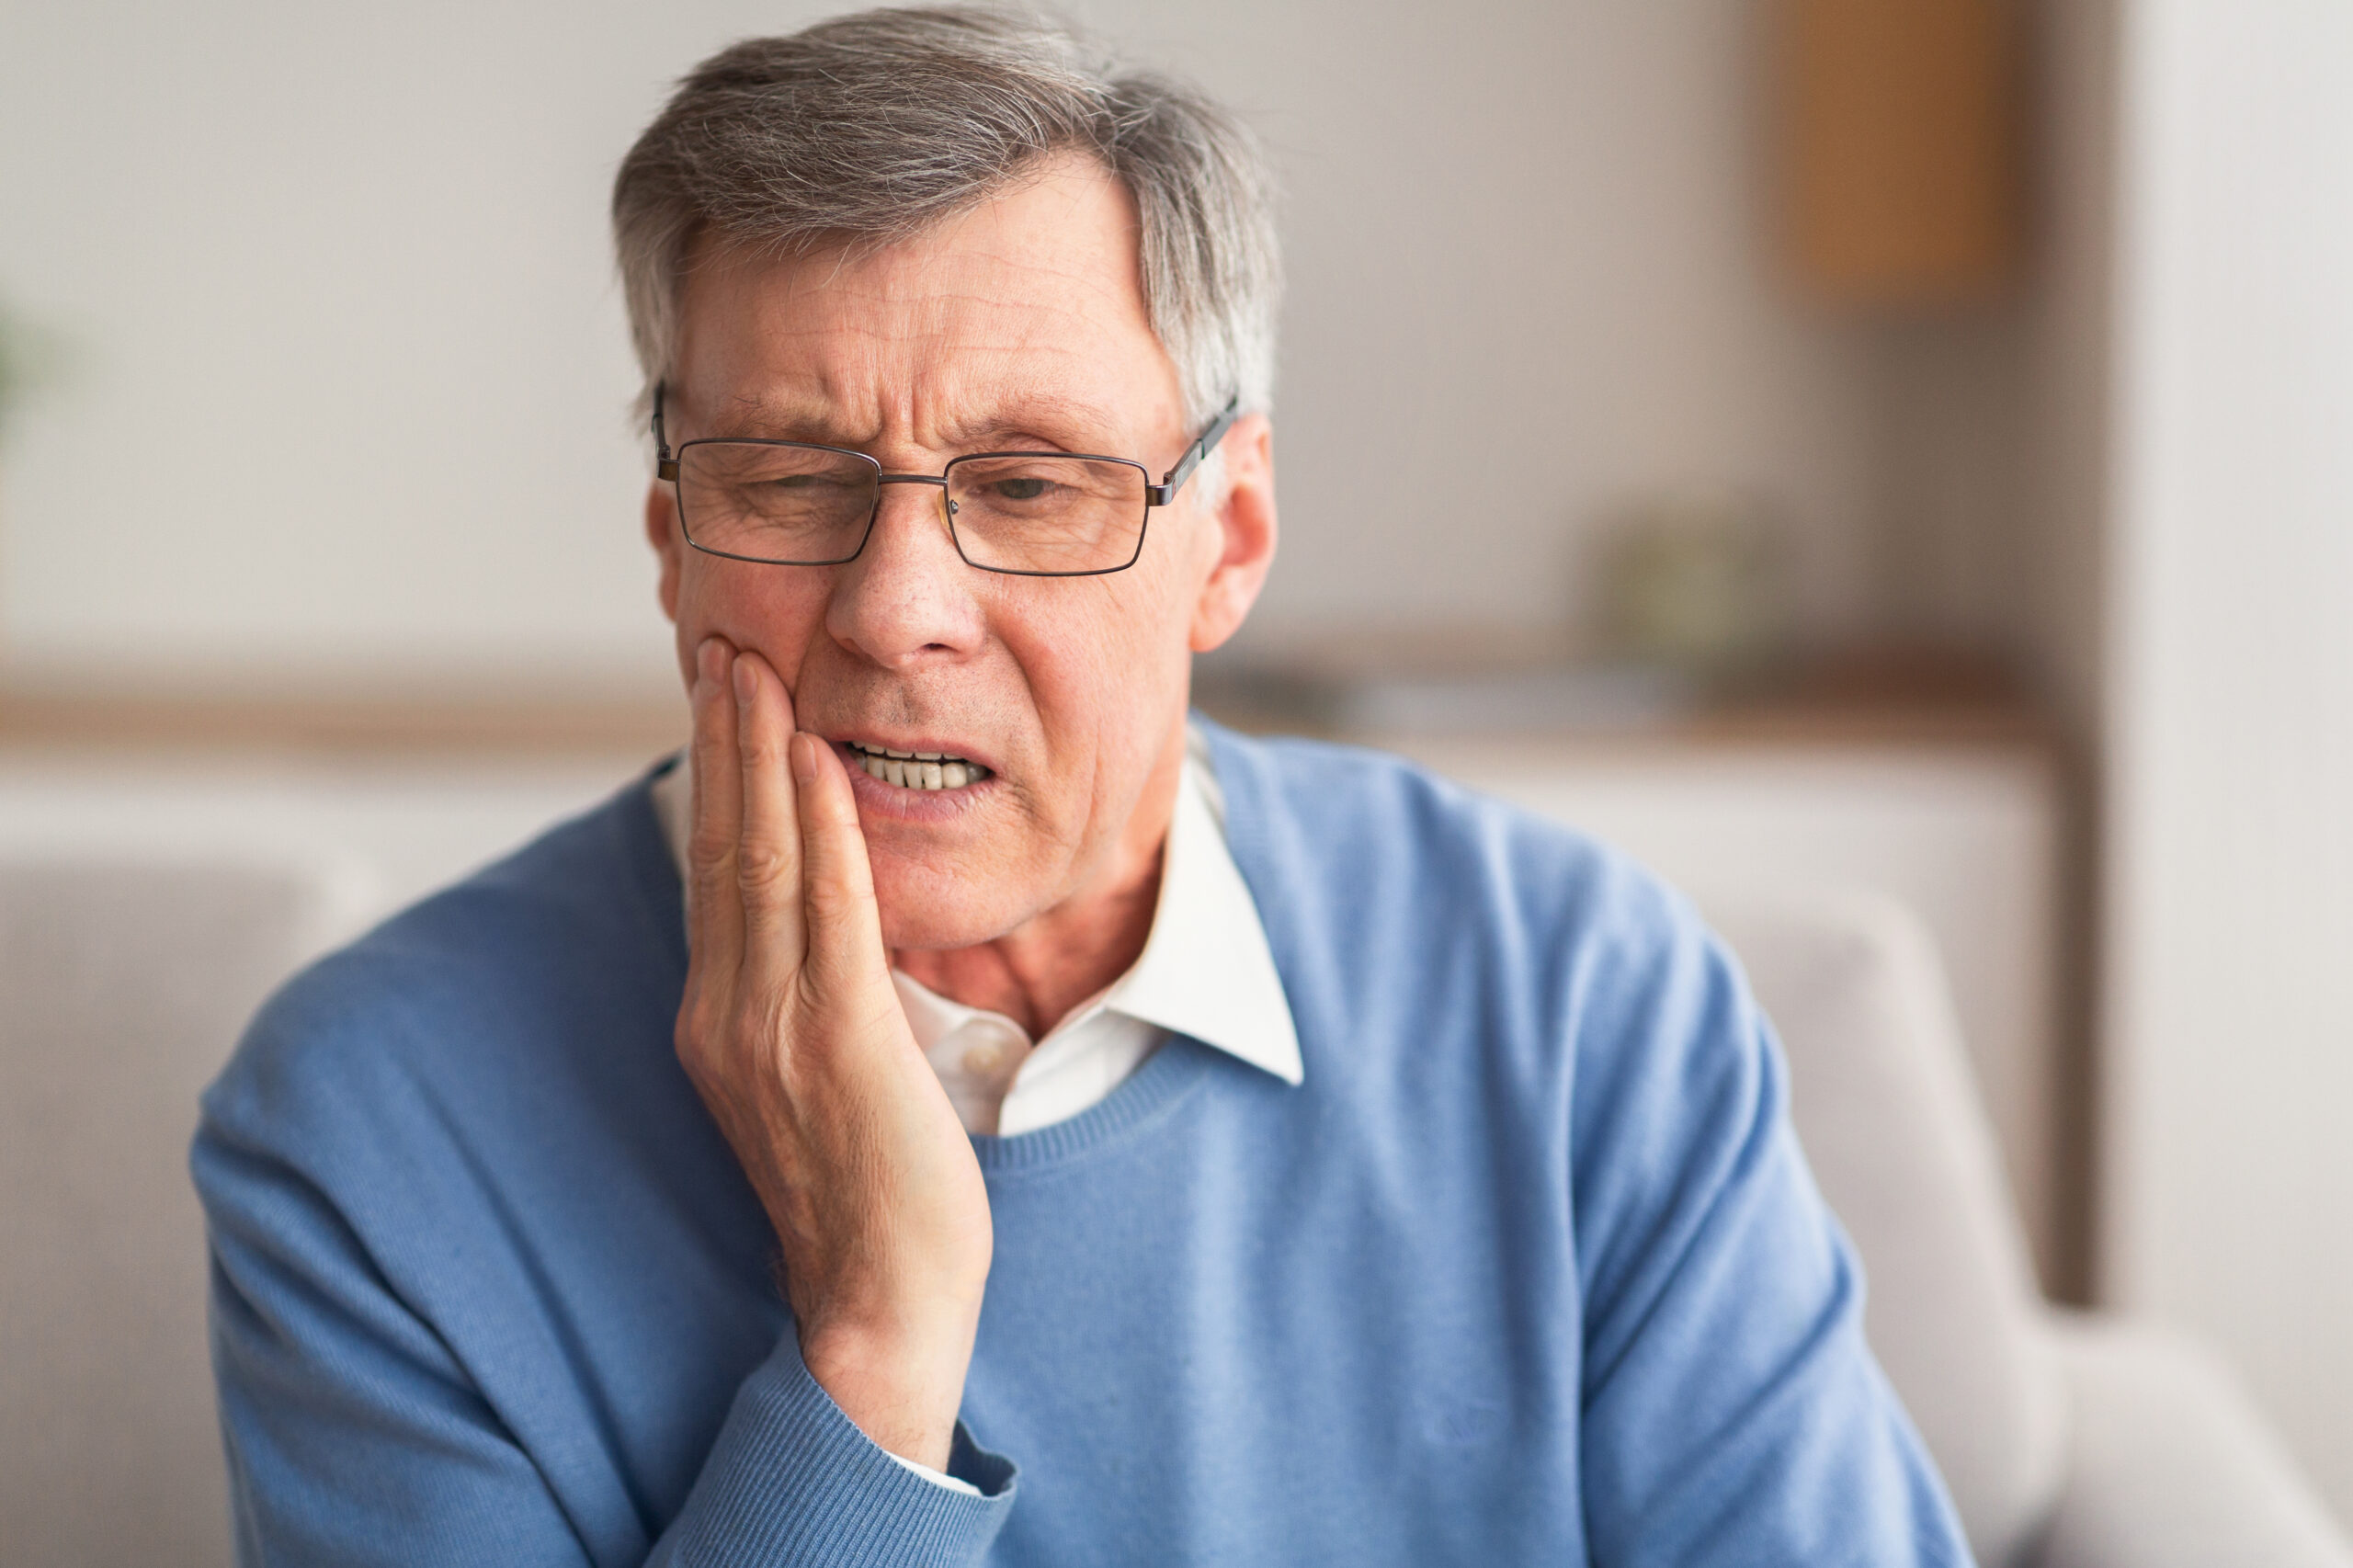 Tooth sensitivity is a common dental complaint that involves pain or discomfort in teeth when exposed to certain temperatures or substances. Elderly Man Having Toothache Touching Cheek Suffering From Pain Sitting On Sofa At Home. Selective Focus